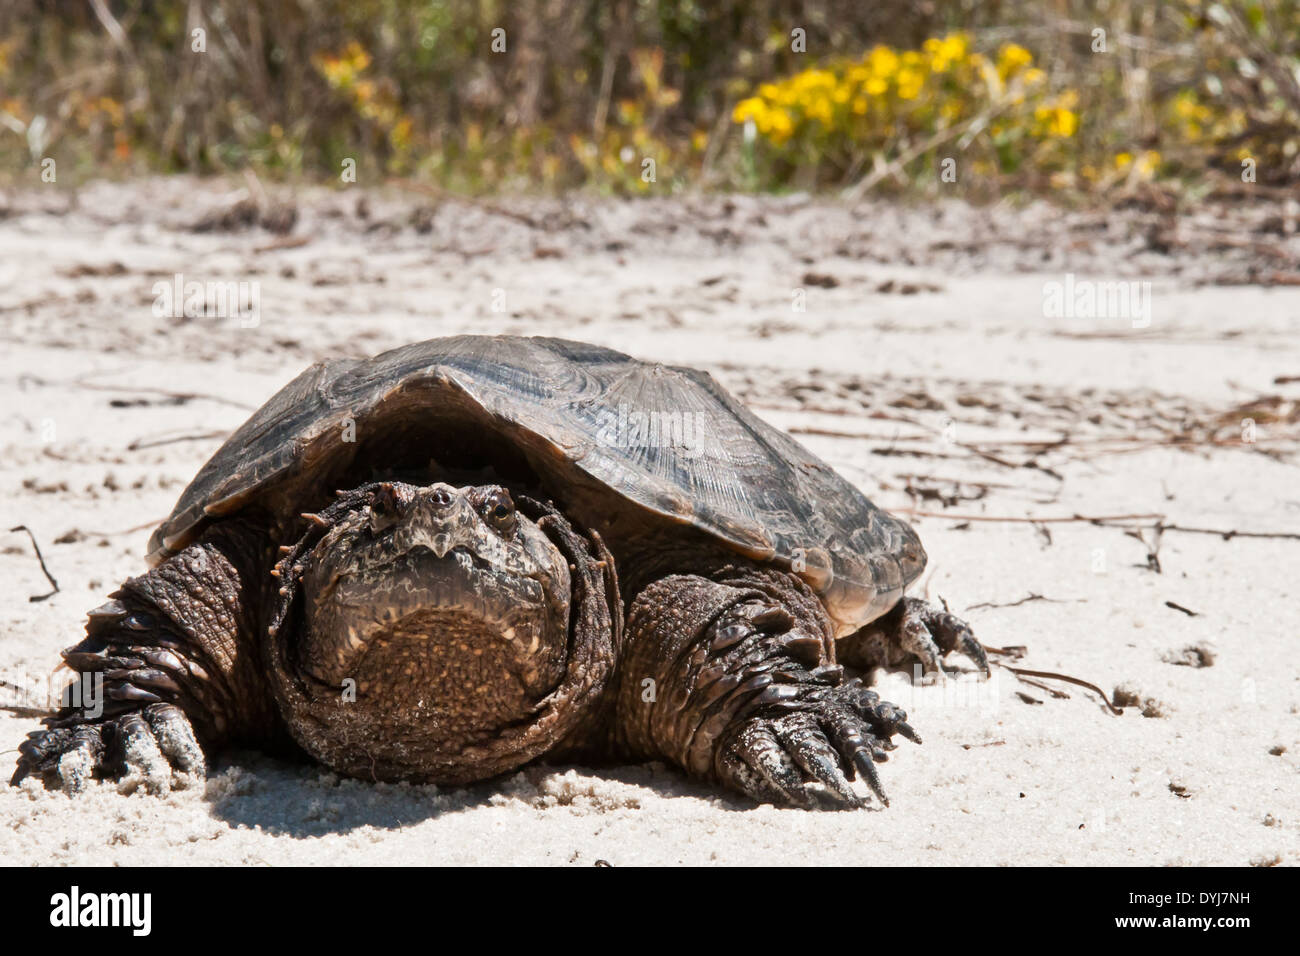 Common Snapping Turtle - Stock Image